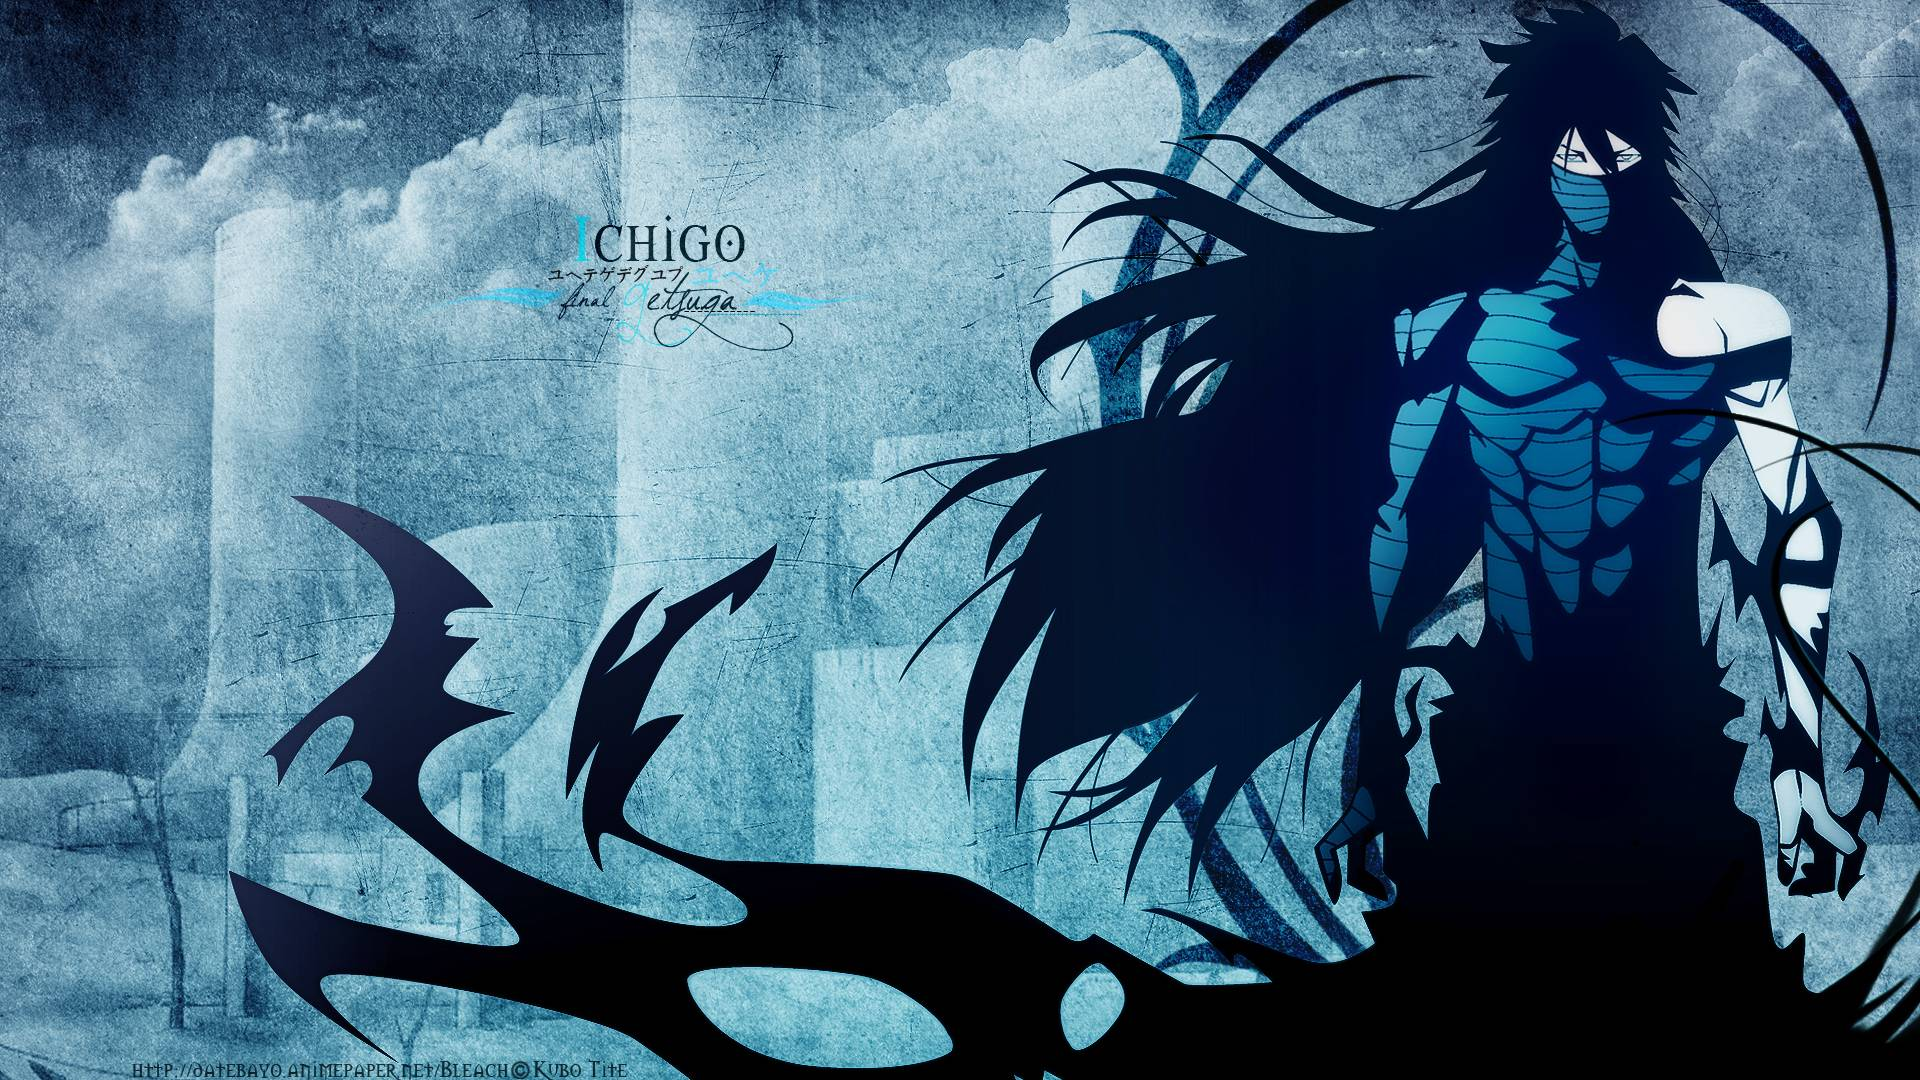 Download Ichigo Bleach Mugetsu Resolution Wallpaper 1920x1080